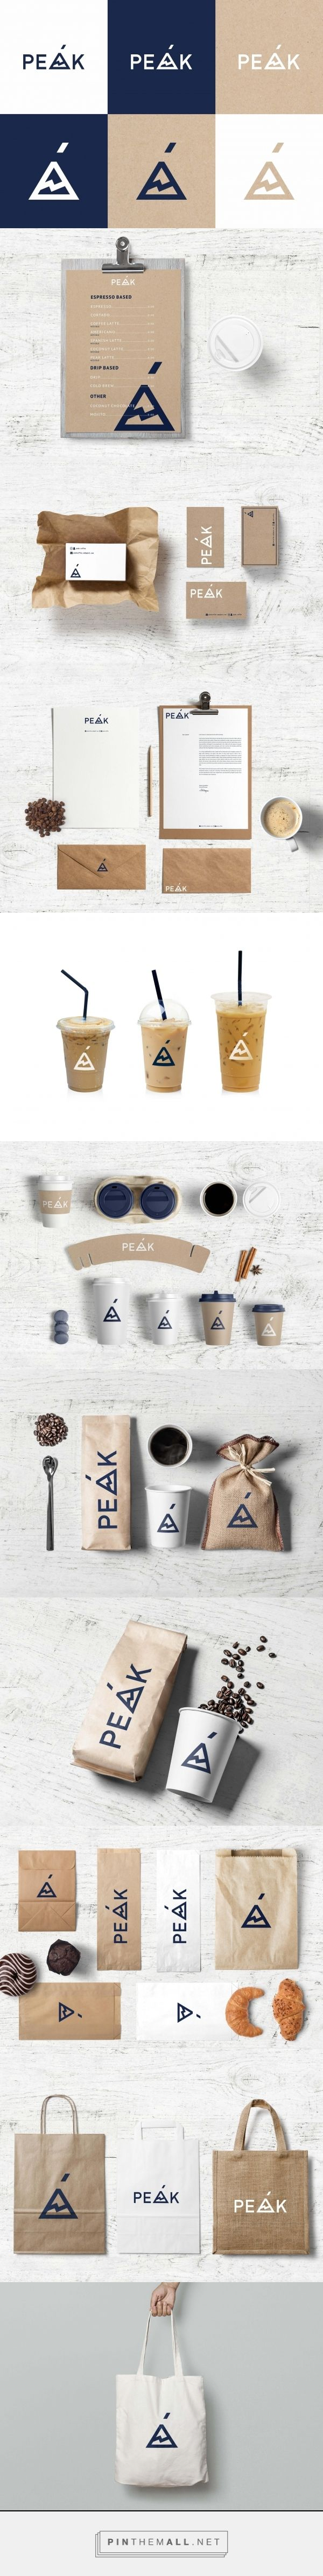 Peak Coffee House Branding by Fivestar Branding Agency | Fivestar Branding Agency – Design and Branding Agency & Curated Inspiration Gallery #coffeebranding #branding #brand #logo #design #designinspiration